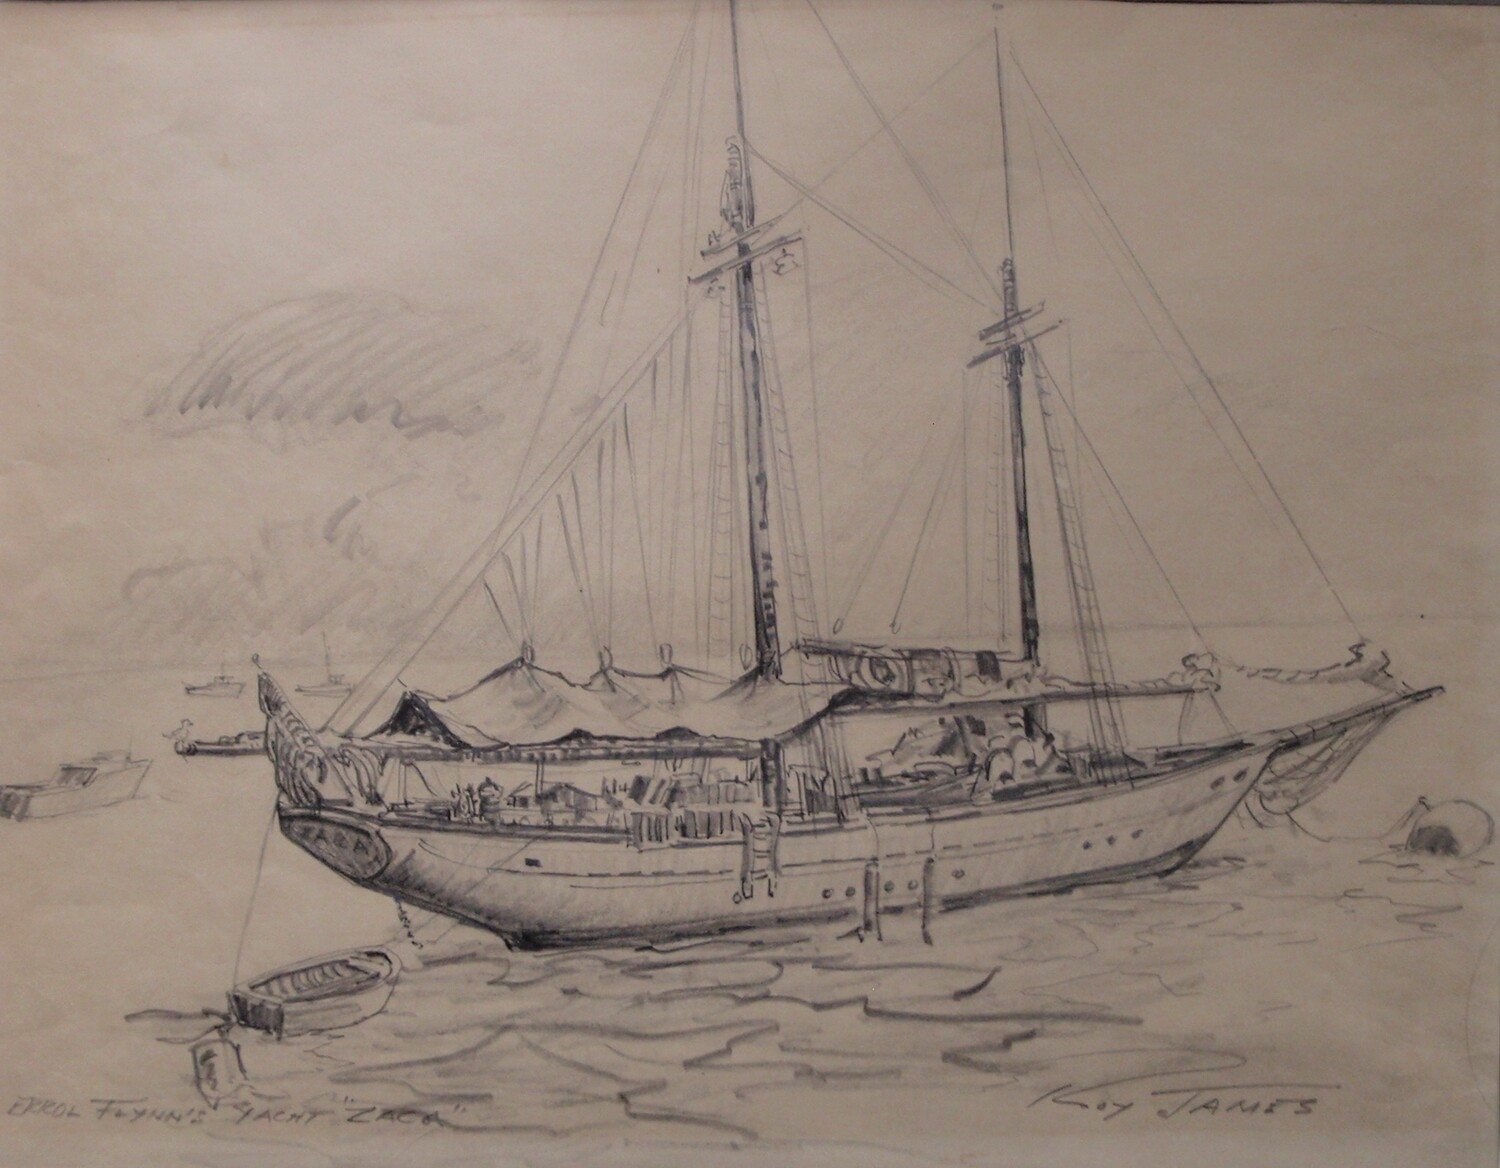 Errol Flynn Yacht Zaca Sketch by Roy James Vintage Sailboat Drawing